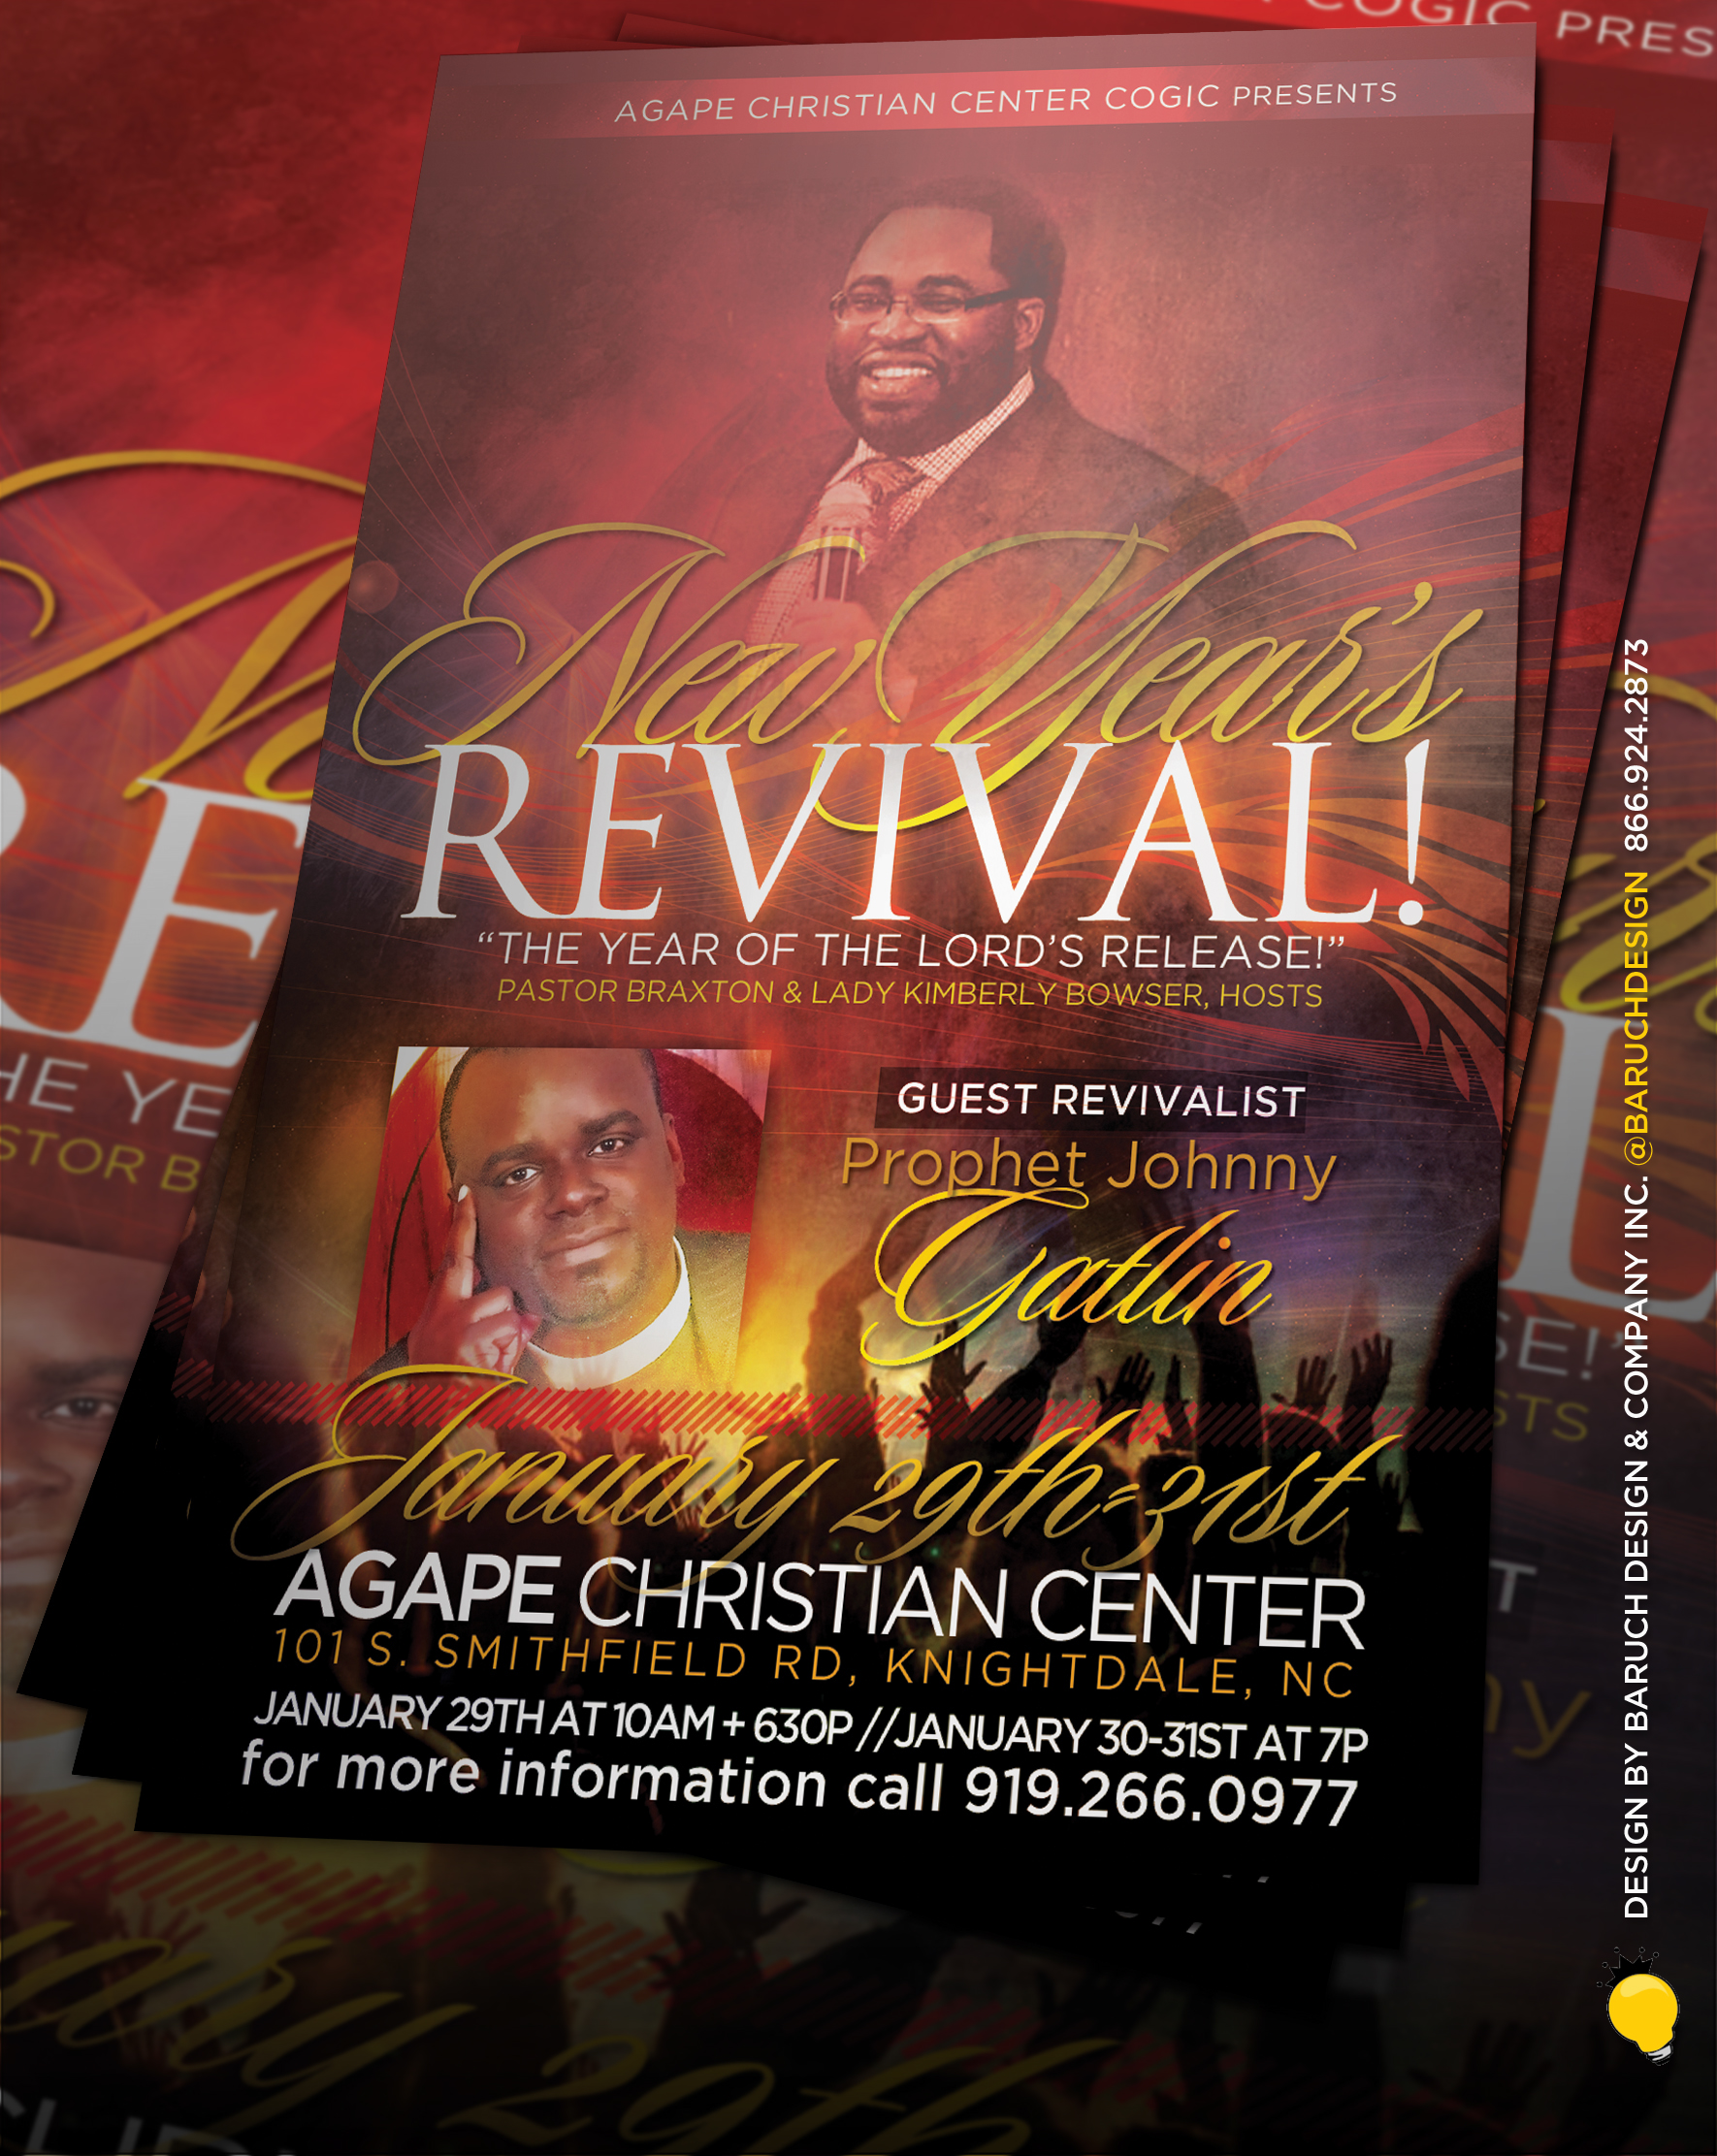 marcus coleman new year s revival flyer the year of release agape christian center cogic raleigh nc